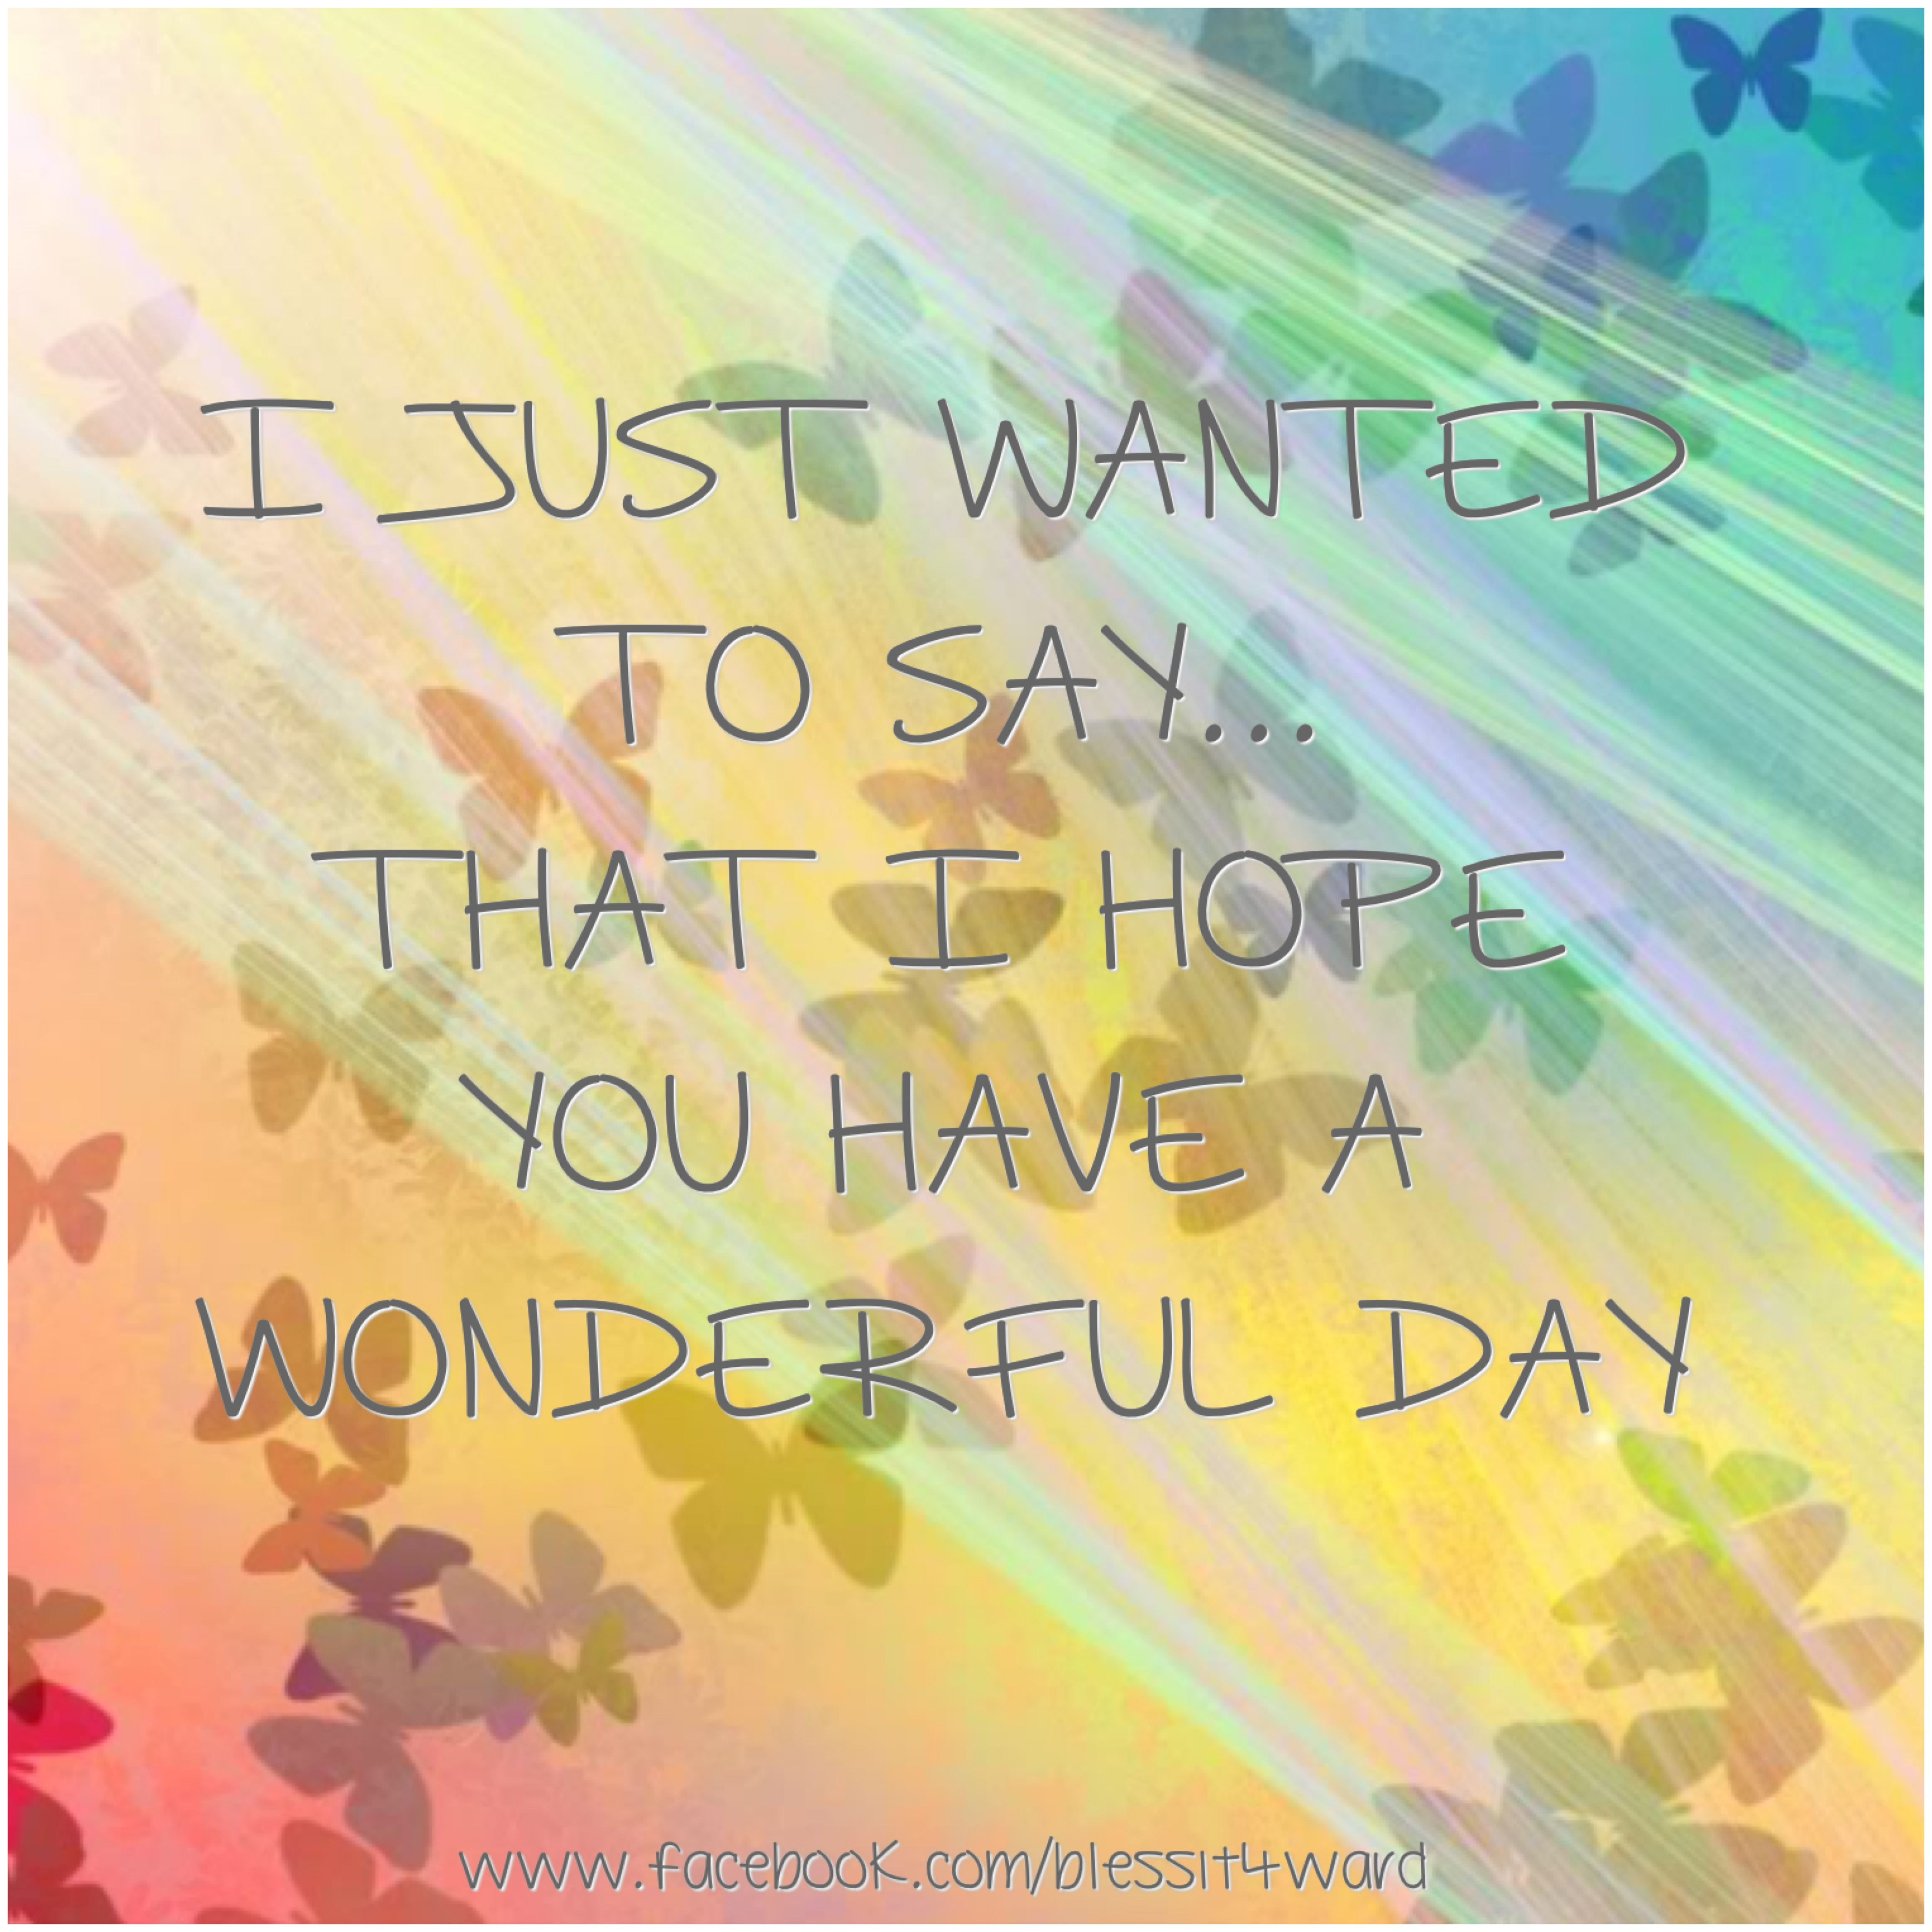 I just wanted to say... that I hope you have a wonderful